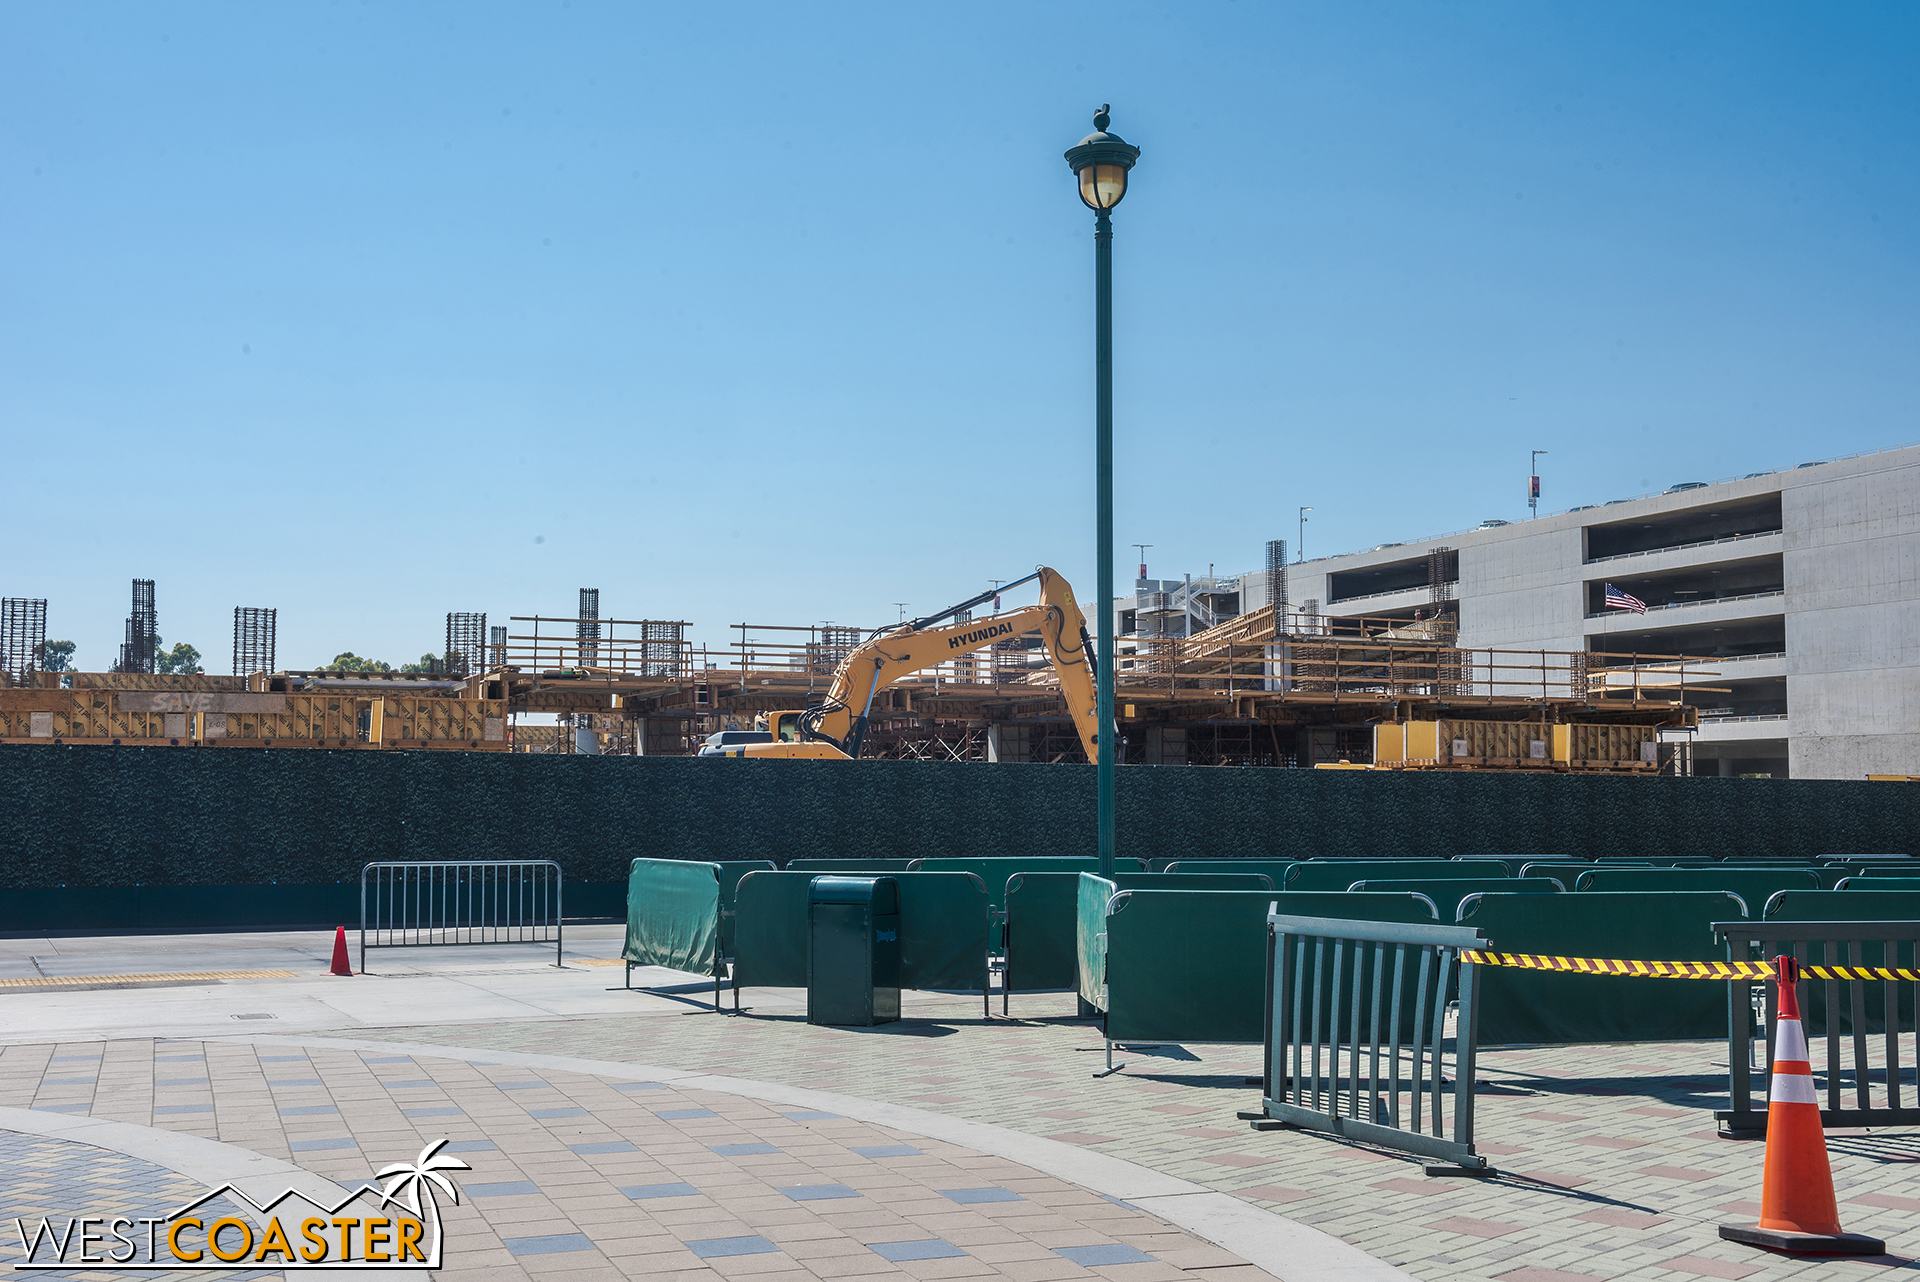 From ground level, the structure is rising above the construction fencing.